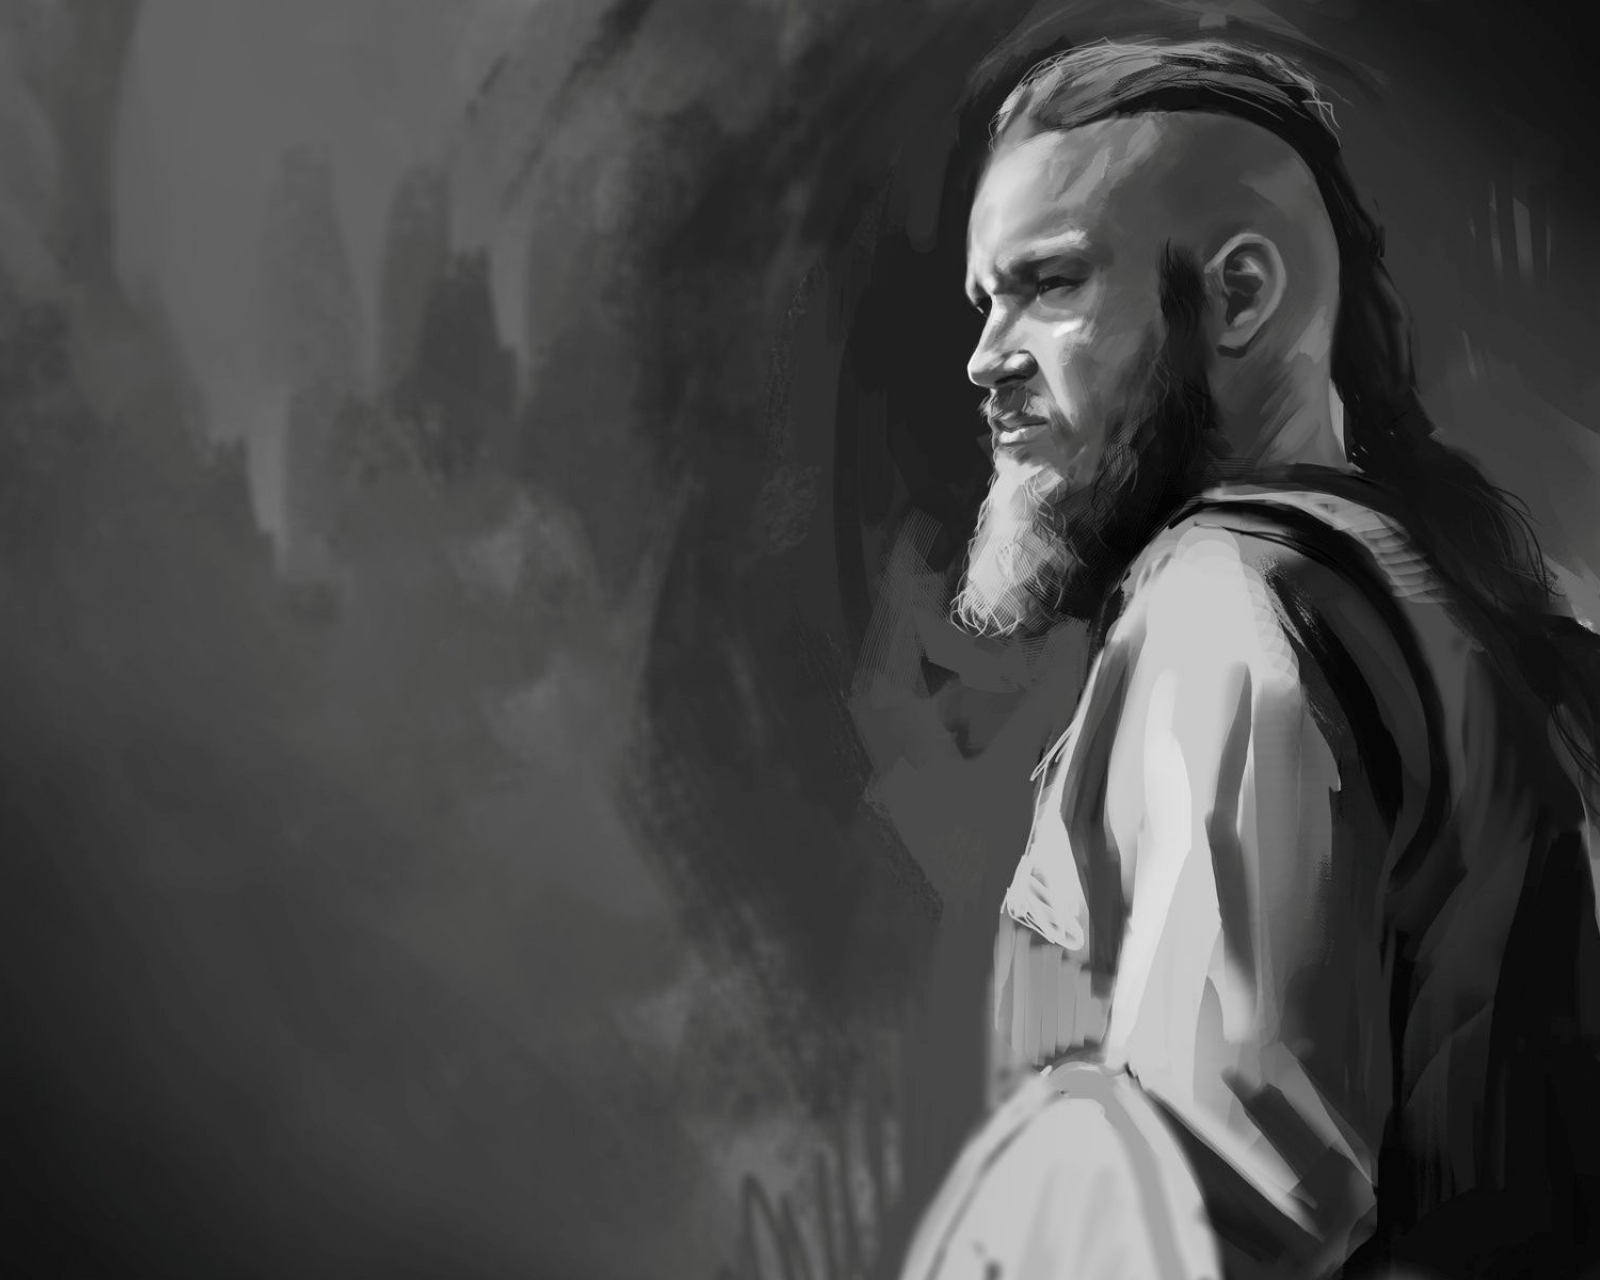 Ragnar Lothbrok Fb Cover 2236244 Hd Wallpaper